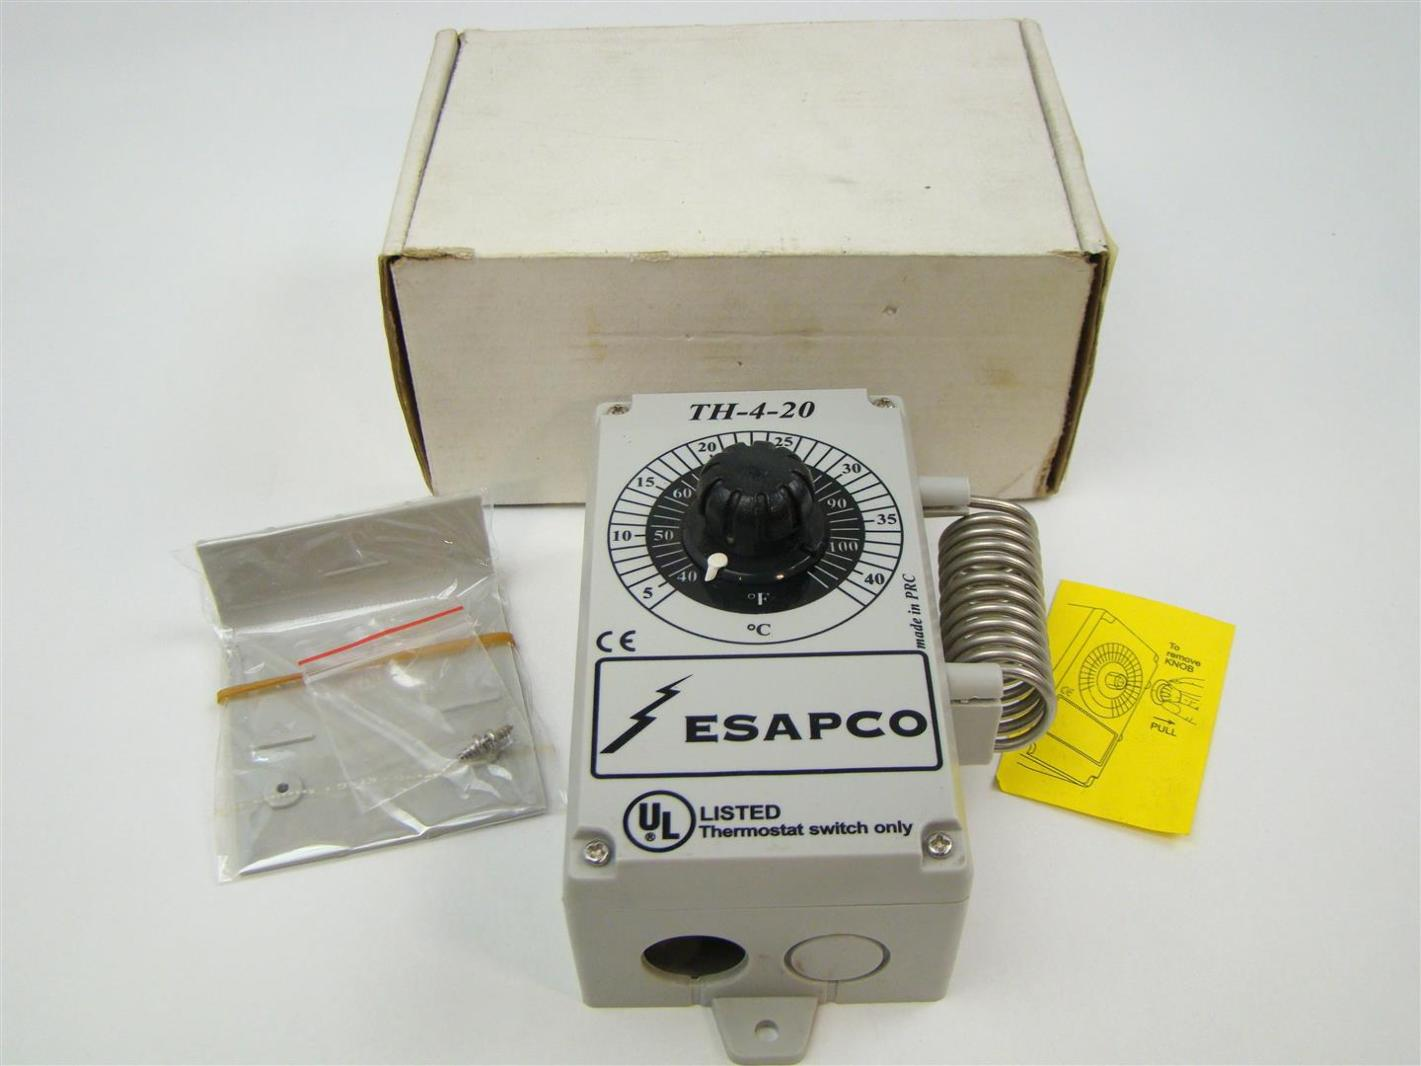 Esapco Weatherproof Line Voltage Thermostat Switch ,5-40C, TH-4-20 ...